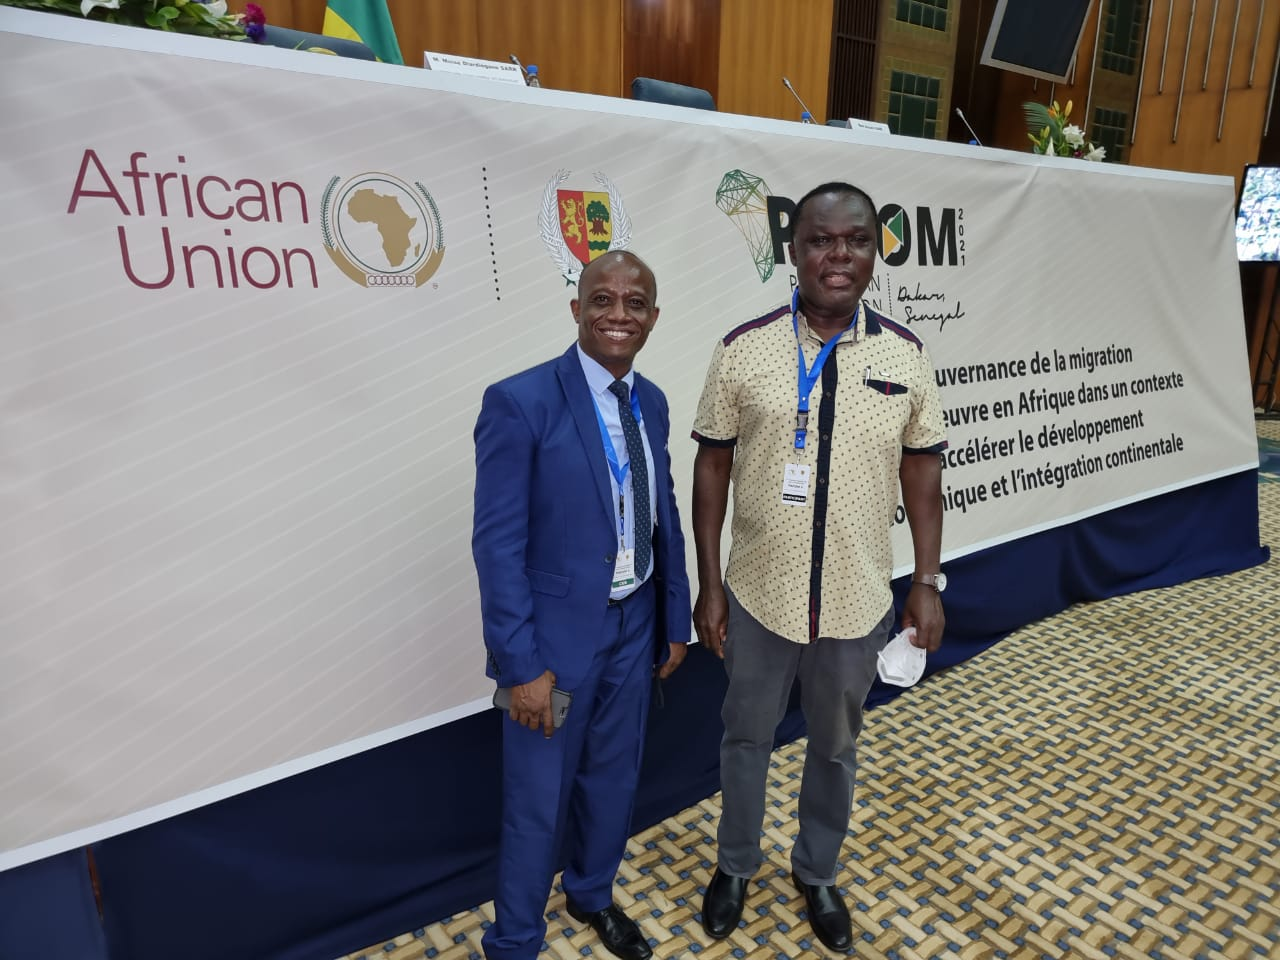 Dr Juma Mukhwana the KNQA DG has arrived in Dakar Senegal as the Head of the Kenyan Delegation at the 6th Pan African Forum on Migration. The forum is organised by the African Union and the United Nations. He is a key speaker on what Africa needs to do to integrate migrants into National educational and training systems for prosperity of Africa.